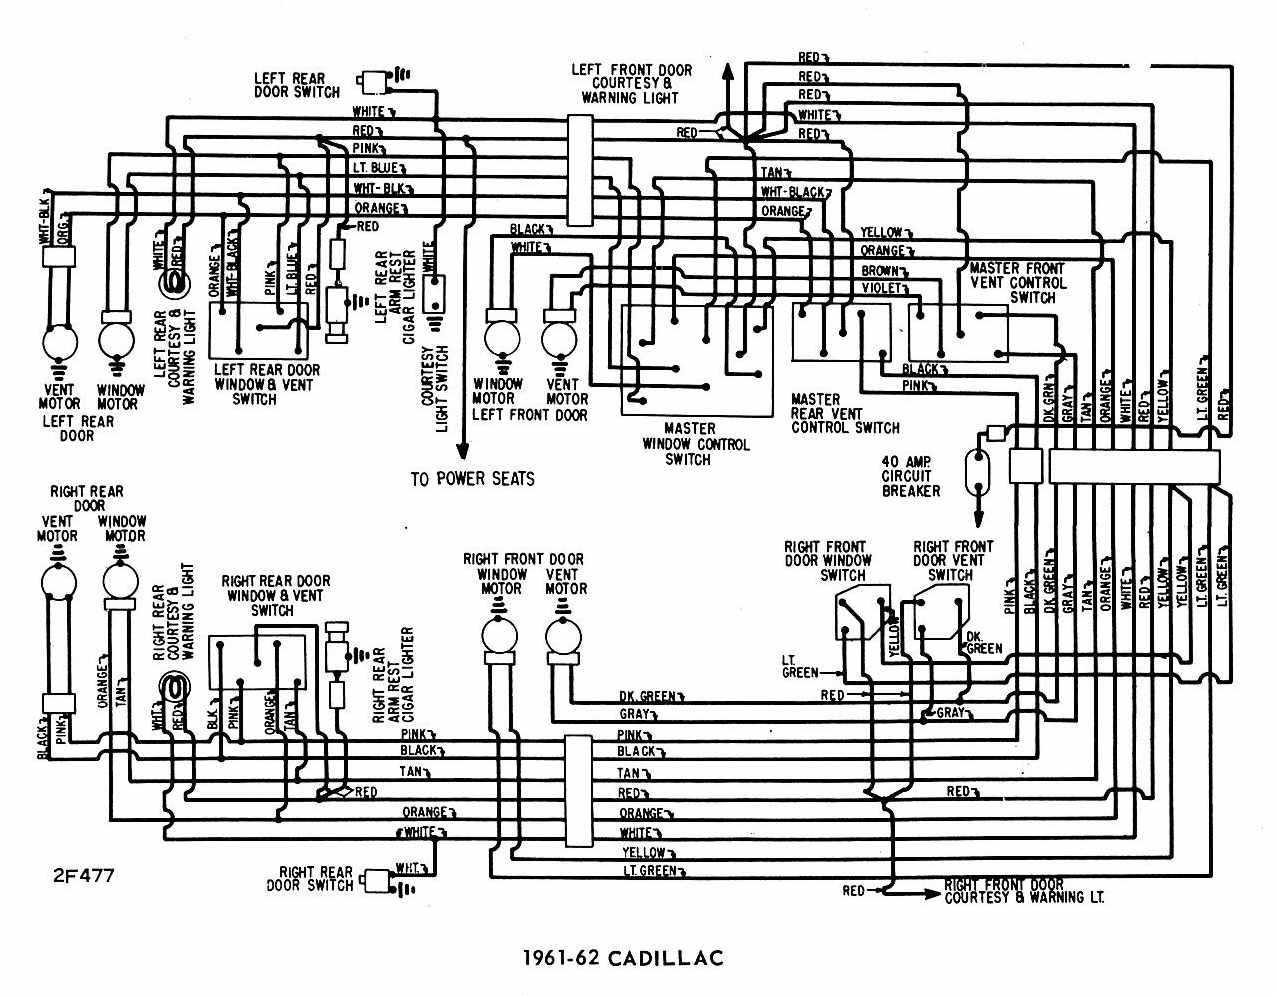 windows wiring diagram of 1961 62 cadillac?t=1508149295 cadillac car manuals, wiring diagrams pdf & fault codes 2000 Cadillac Escalade Radio Comes On and Off at gsmx.co